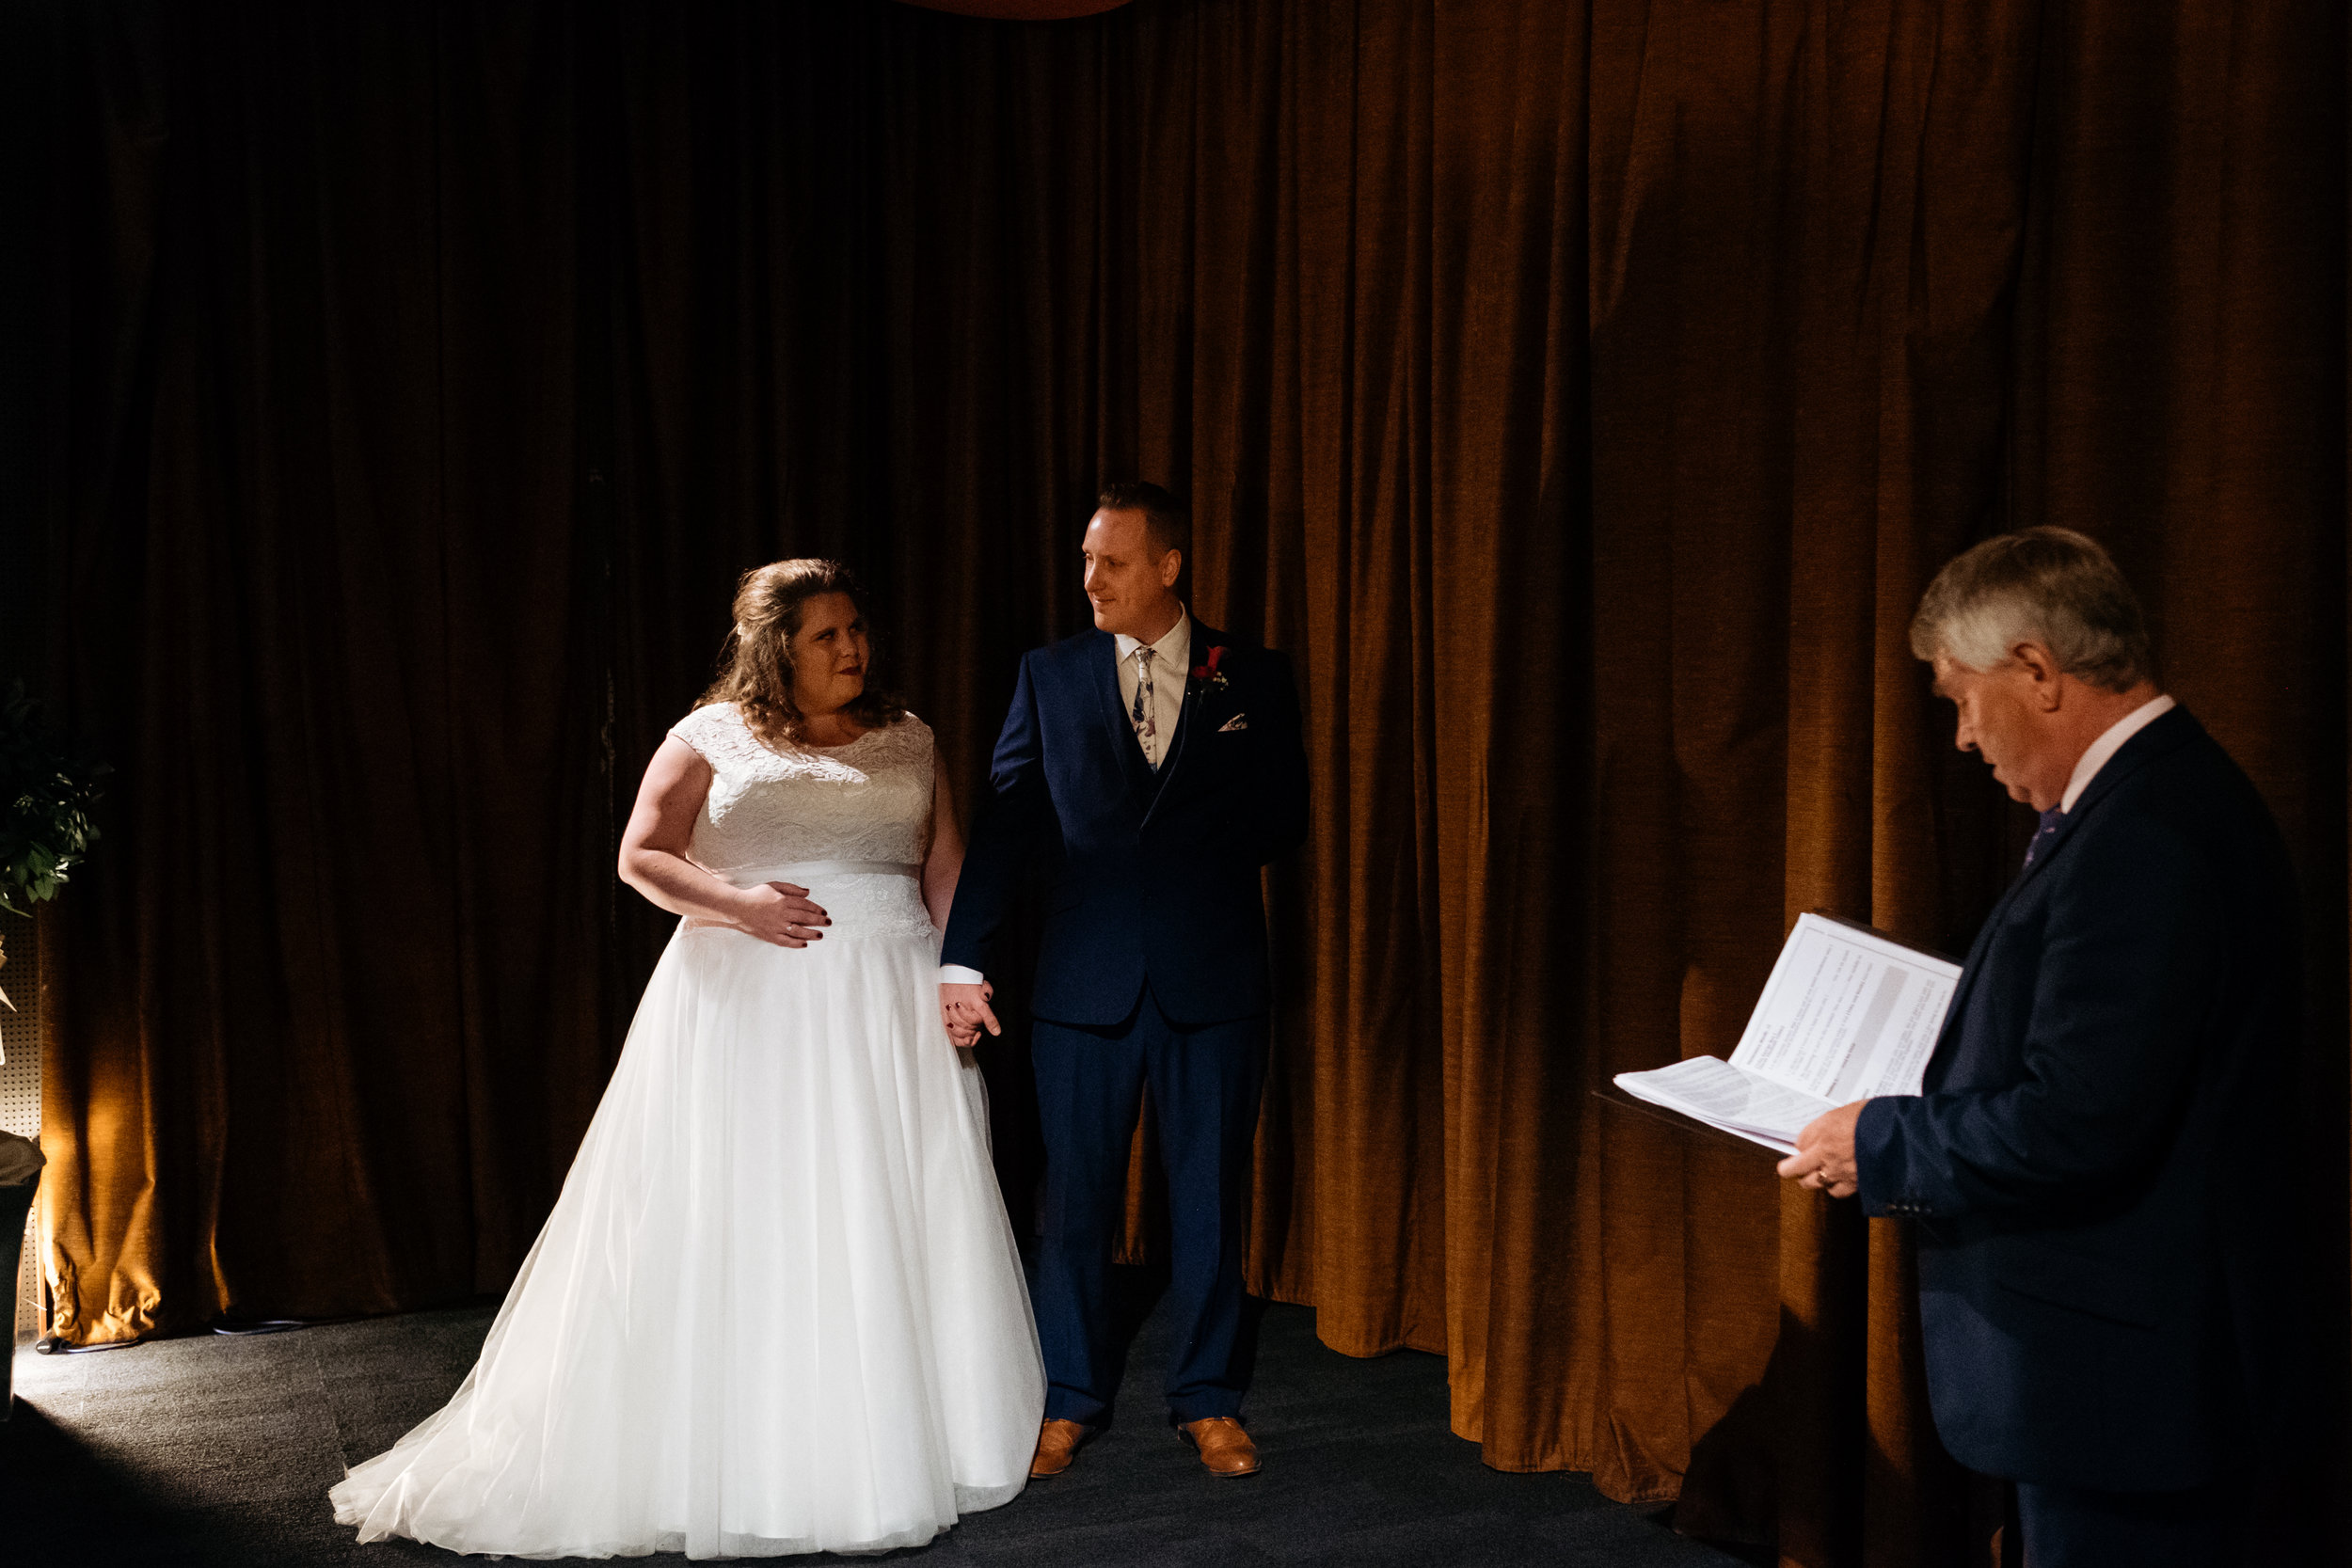 Bride and Groom stand with celebrant on the stage at the Little Theatre in Bath